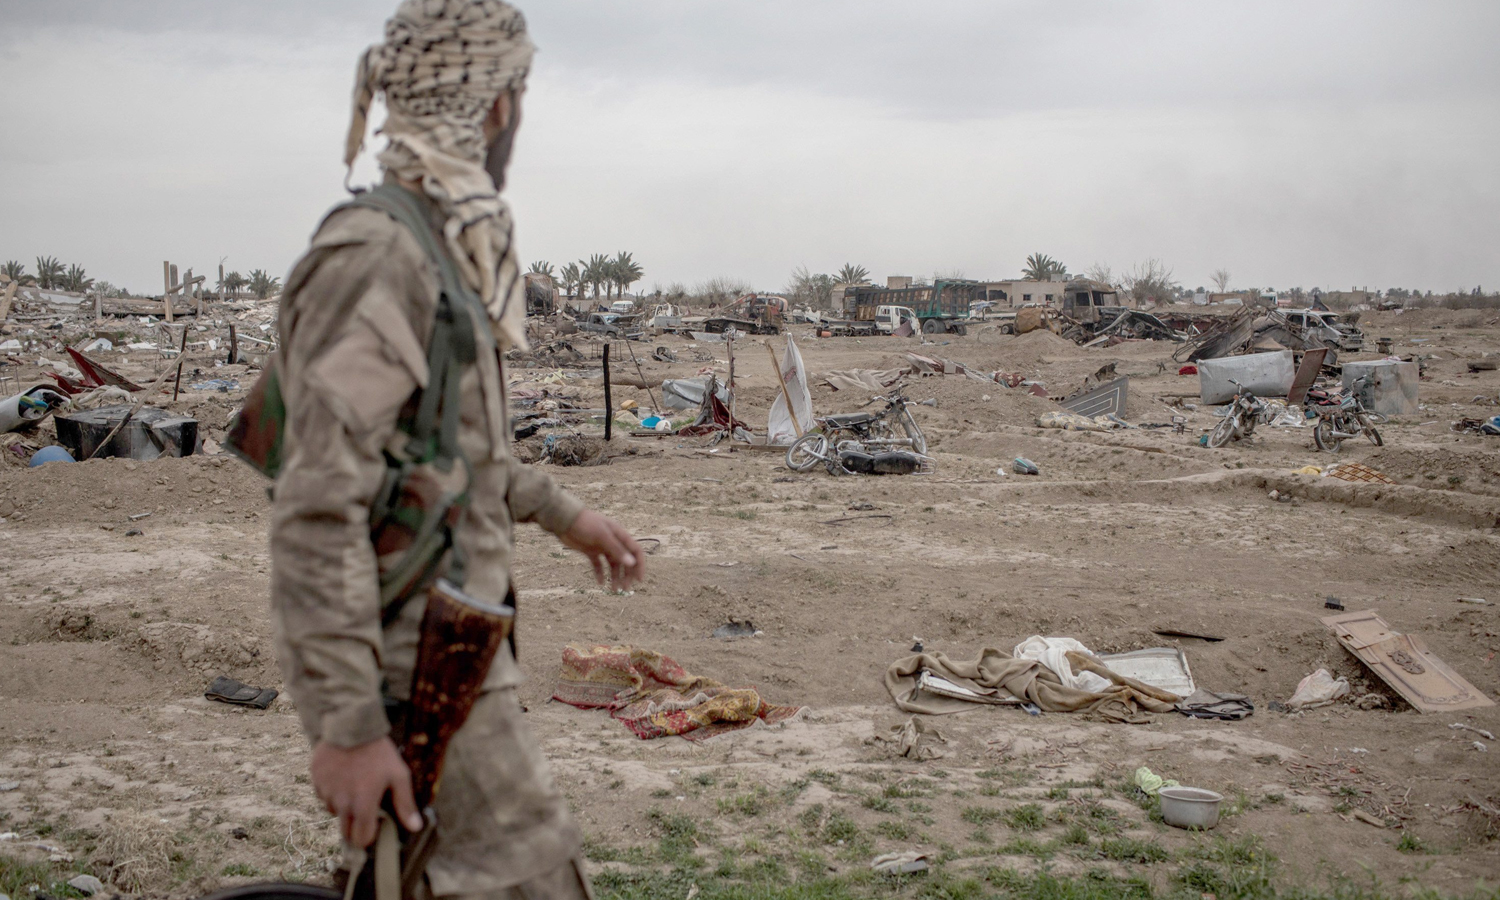 An SDF fighter walking in the middle of al-Baghuz town after the end of the battles with the so-called Islamic State - April 2019 (The Sun)